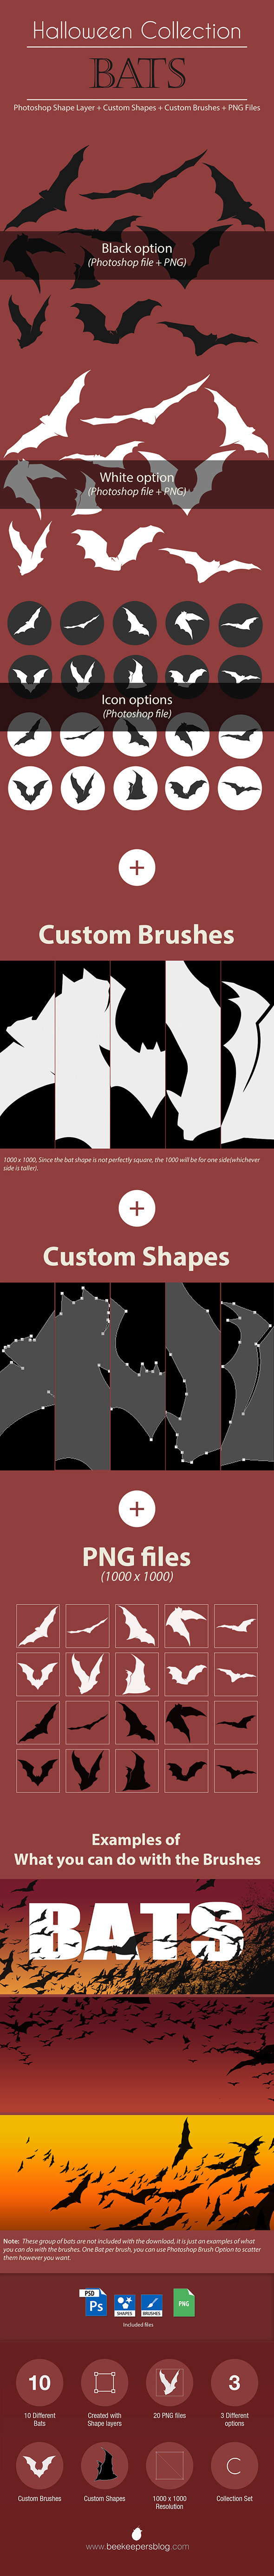 GraphicRiver Halloween Collection Bats 9122363